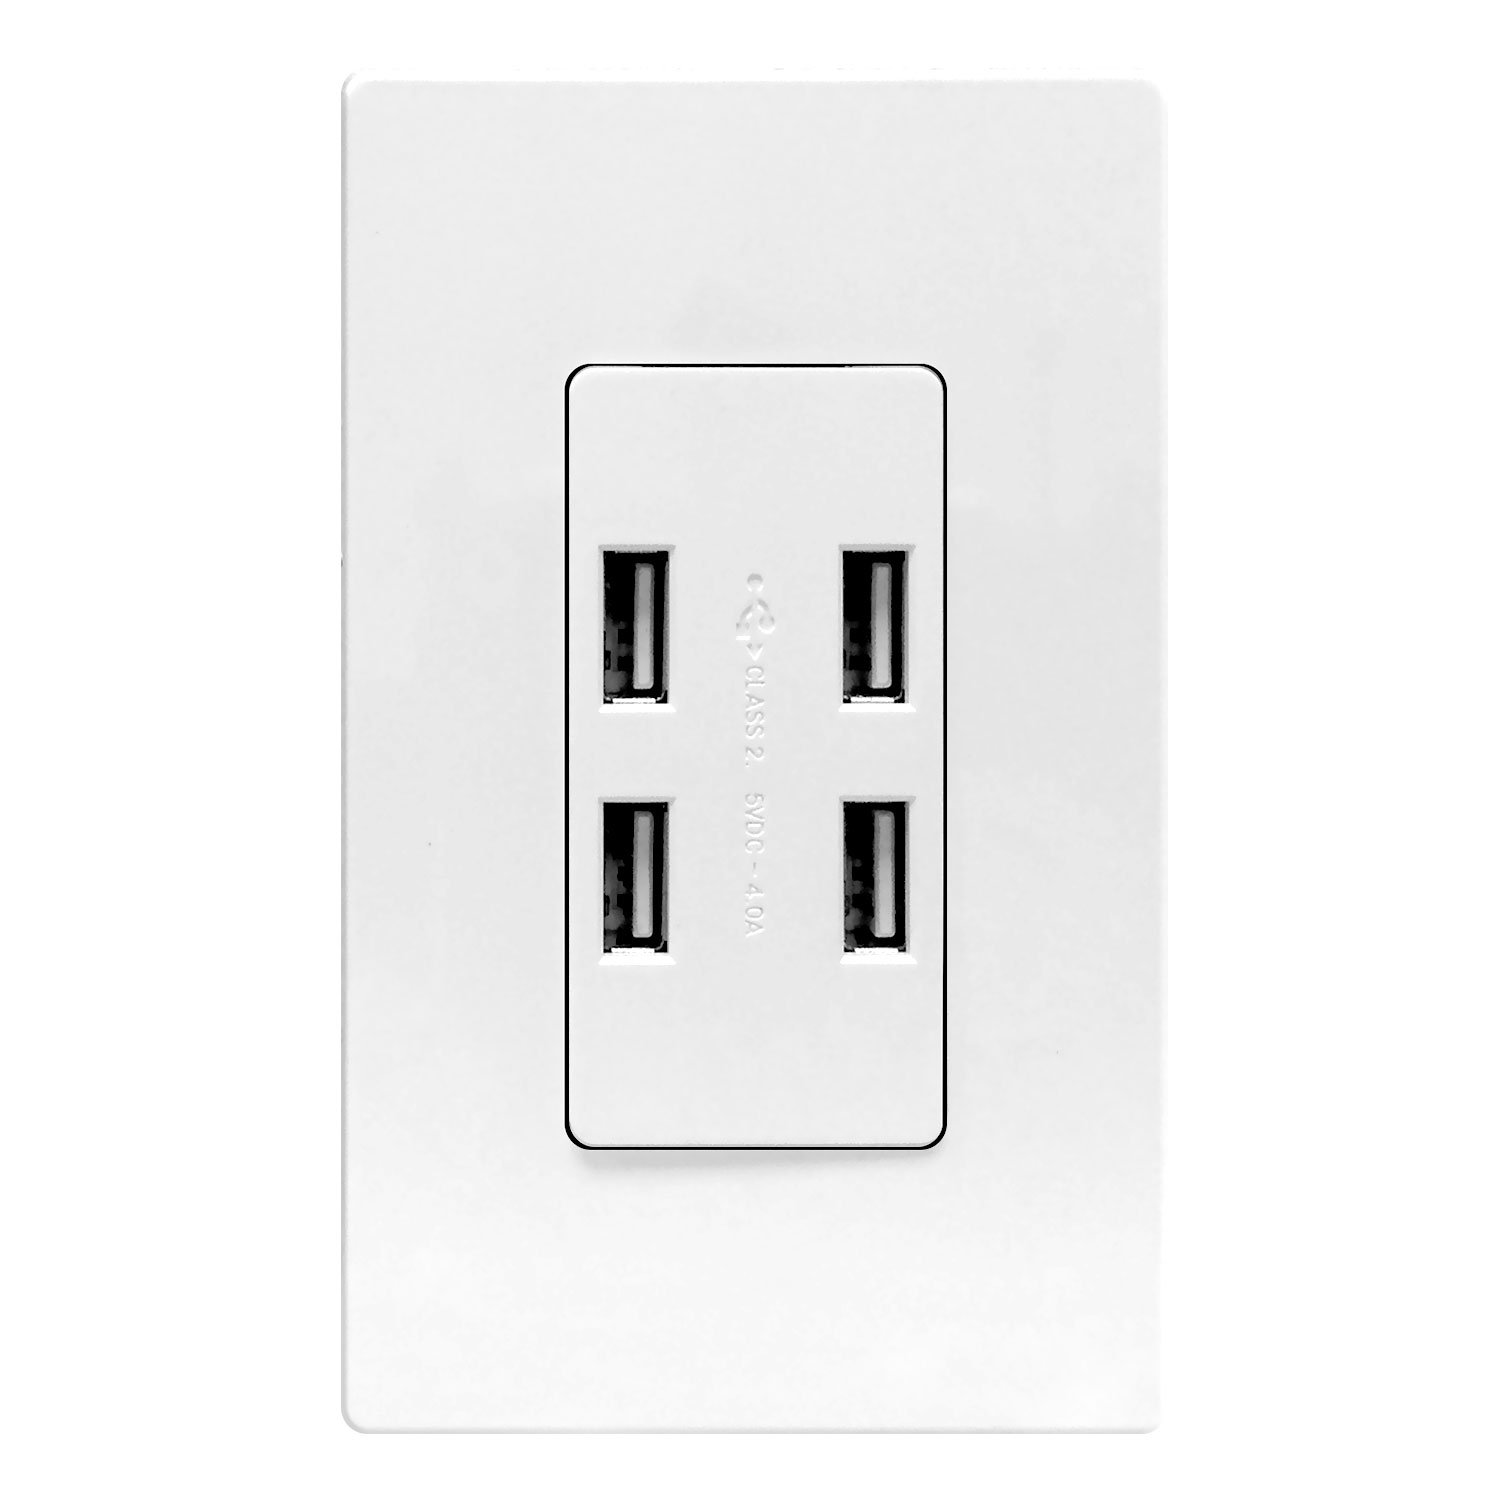 USB Port Hub by Enerlites, 4-Port USB Outlet, USB Power Outlet, 62000-4USB 4.0A High Speed 4-Port USB Charger Outlet In-Wall, 2 Wall Plates Included, White